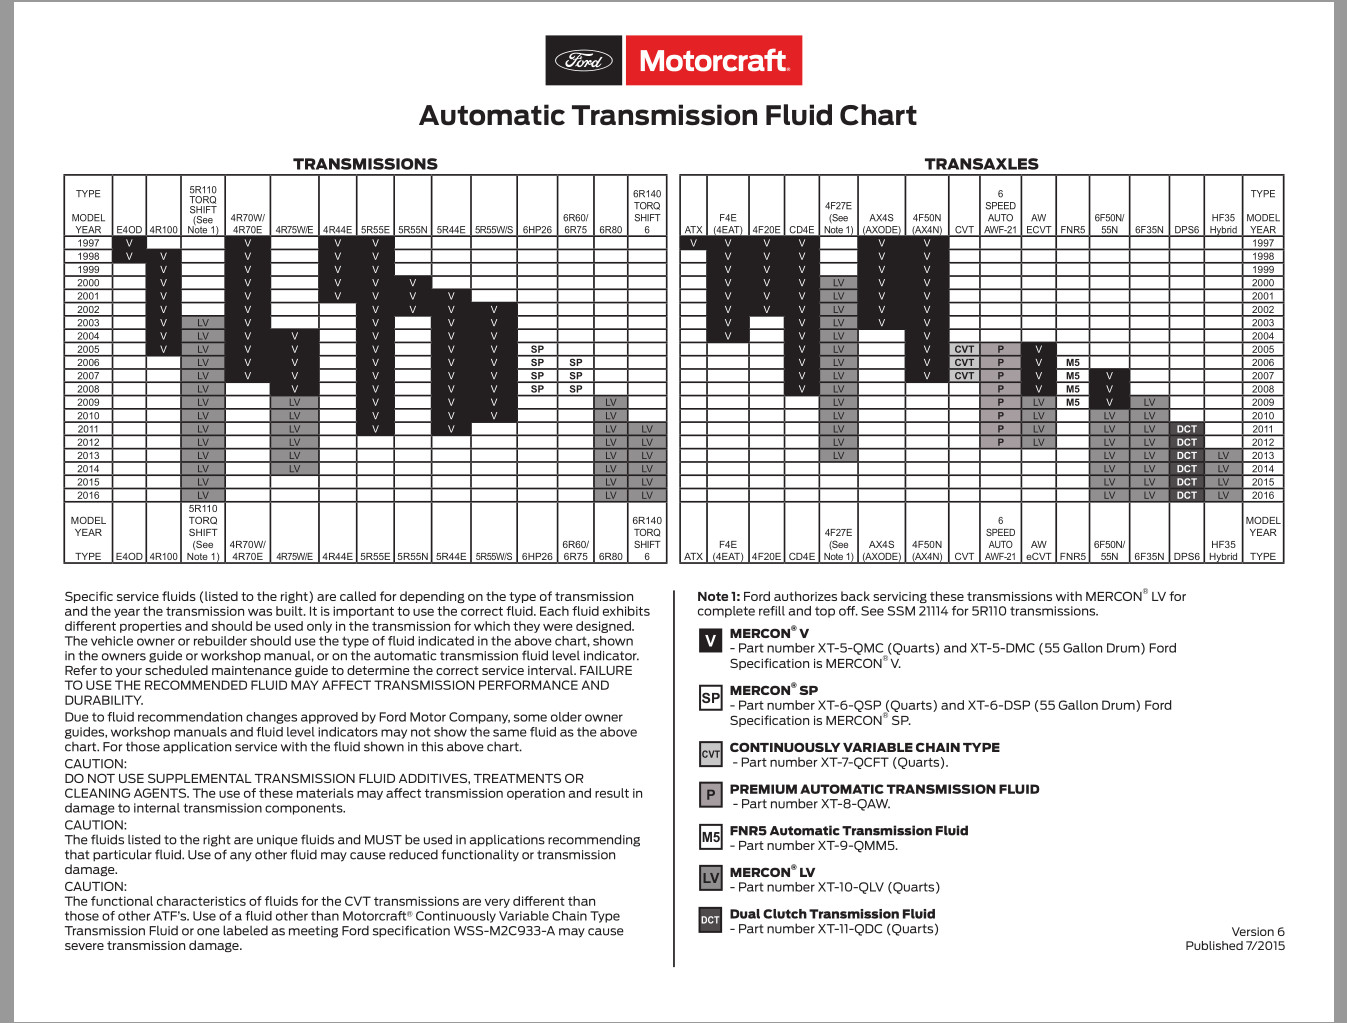 Ford Motorcraft Automatic Transmission Fluid Chart